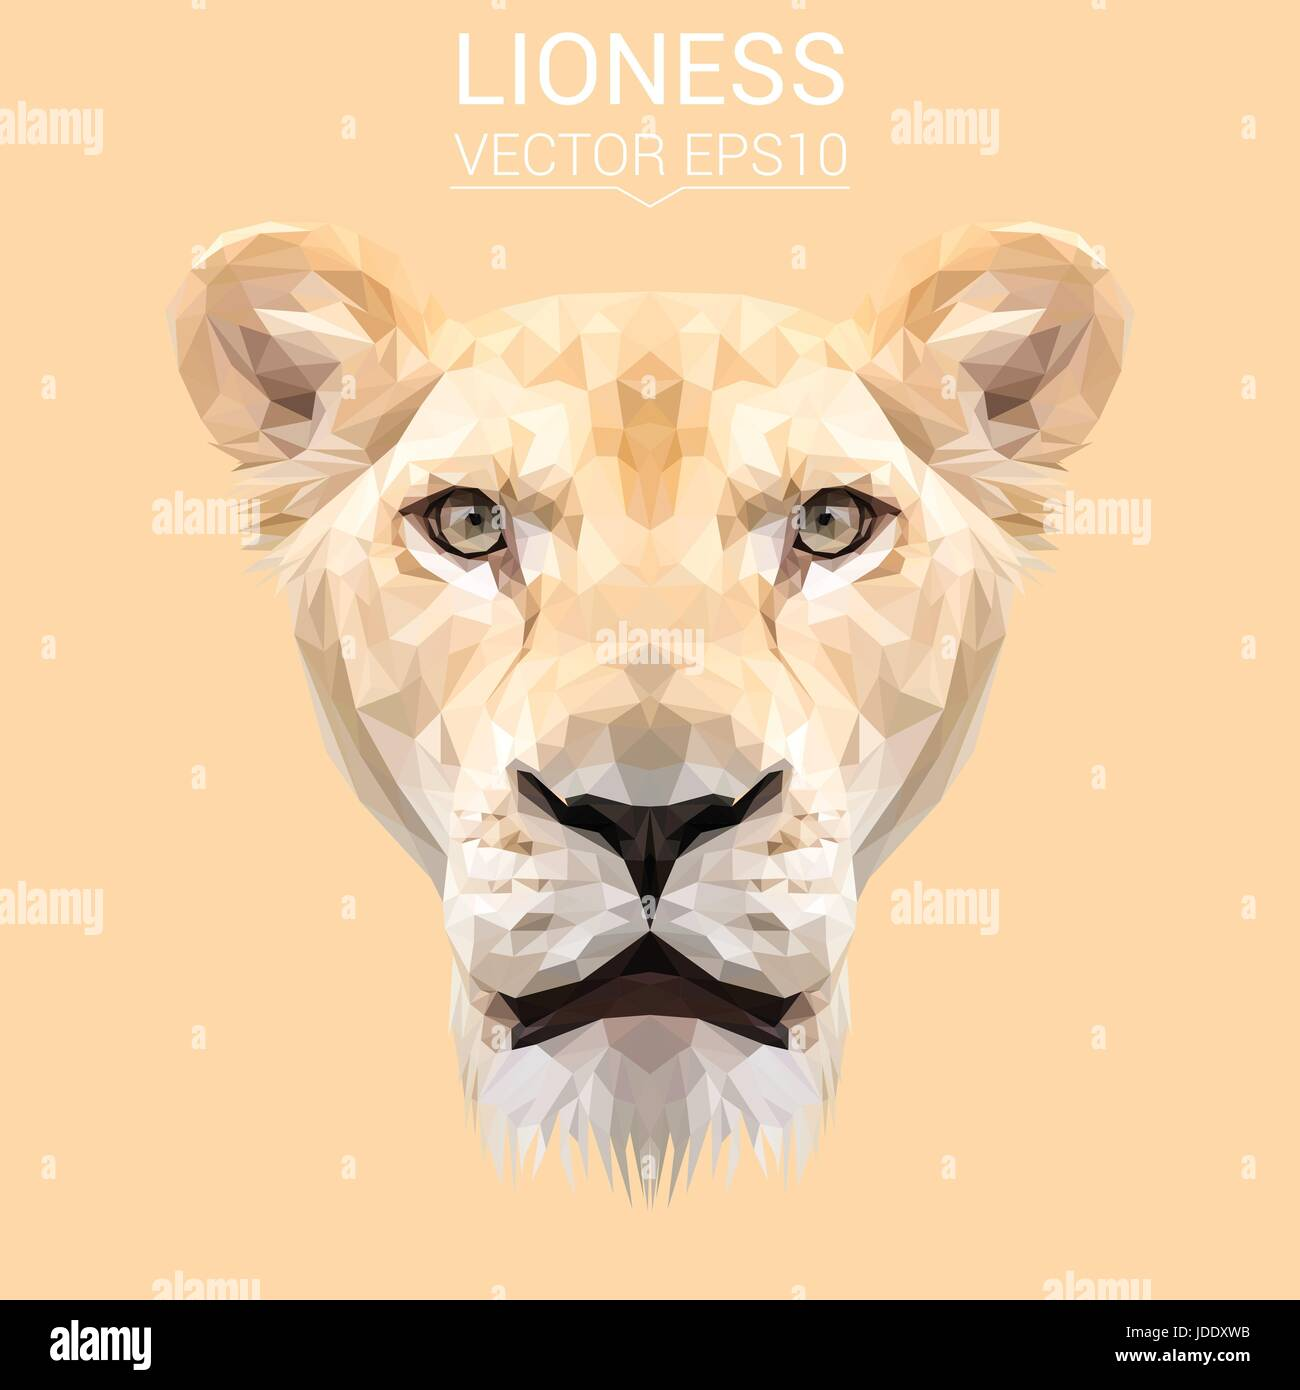 lioness face stock images royalty free images vectors.html